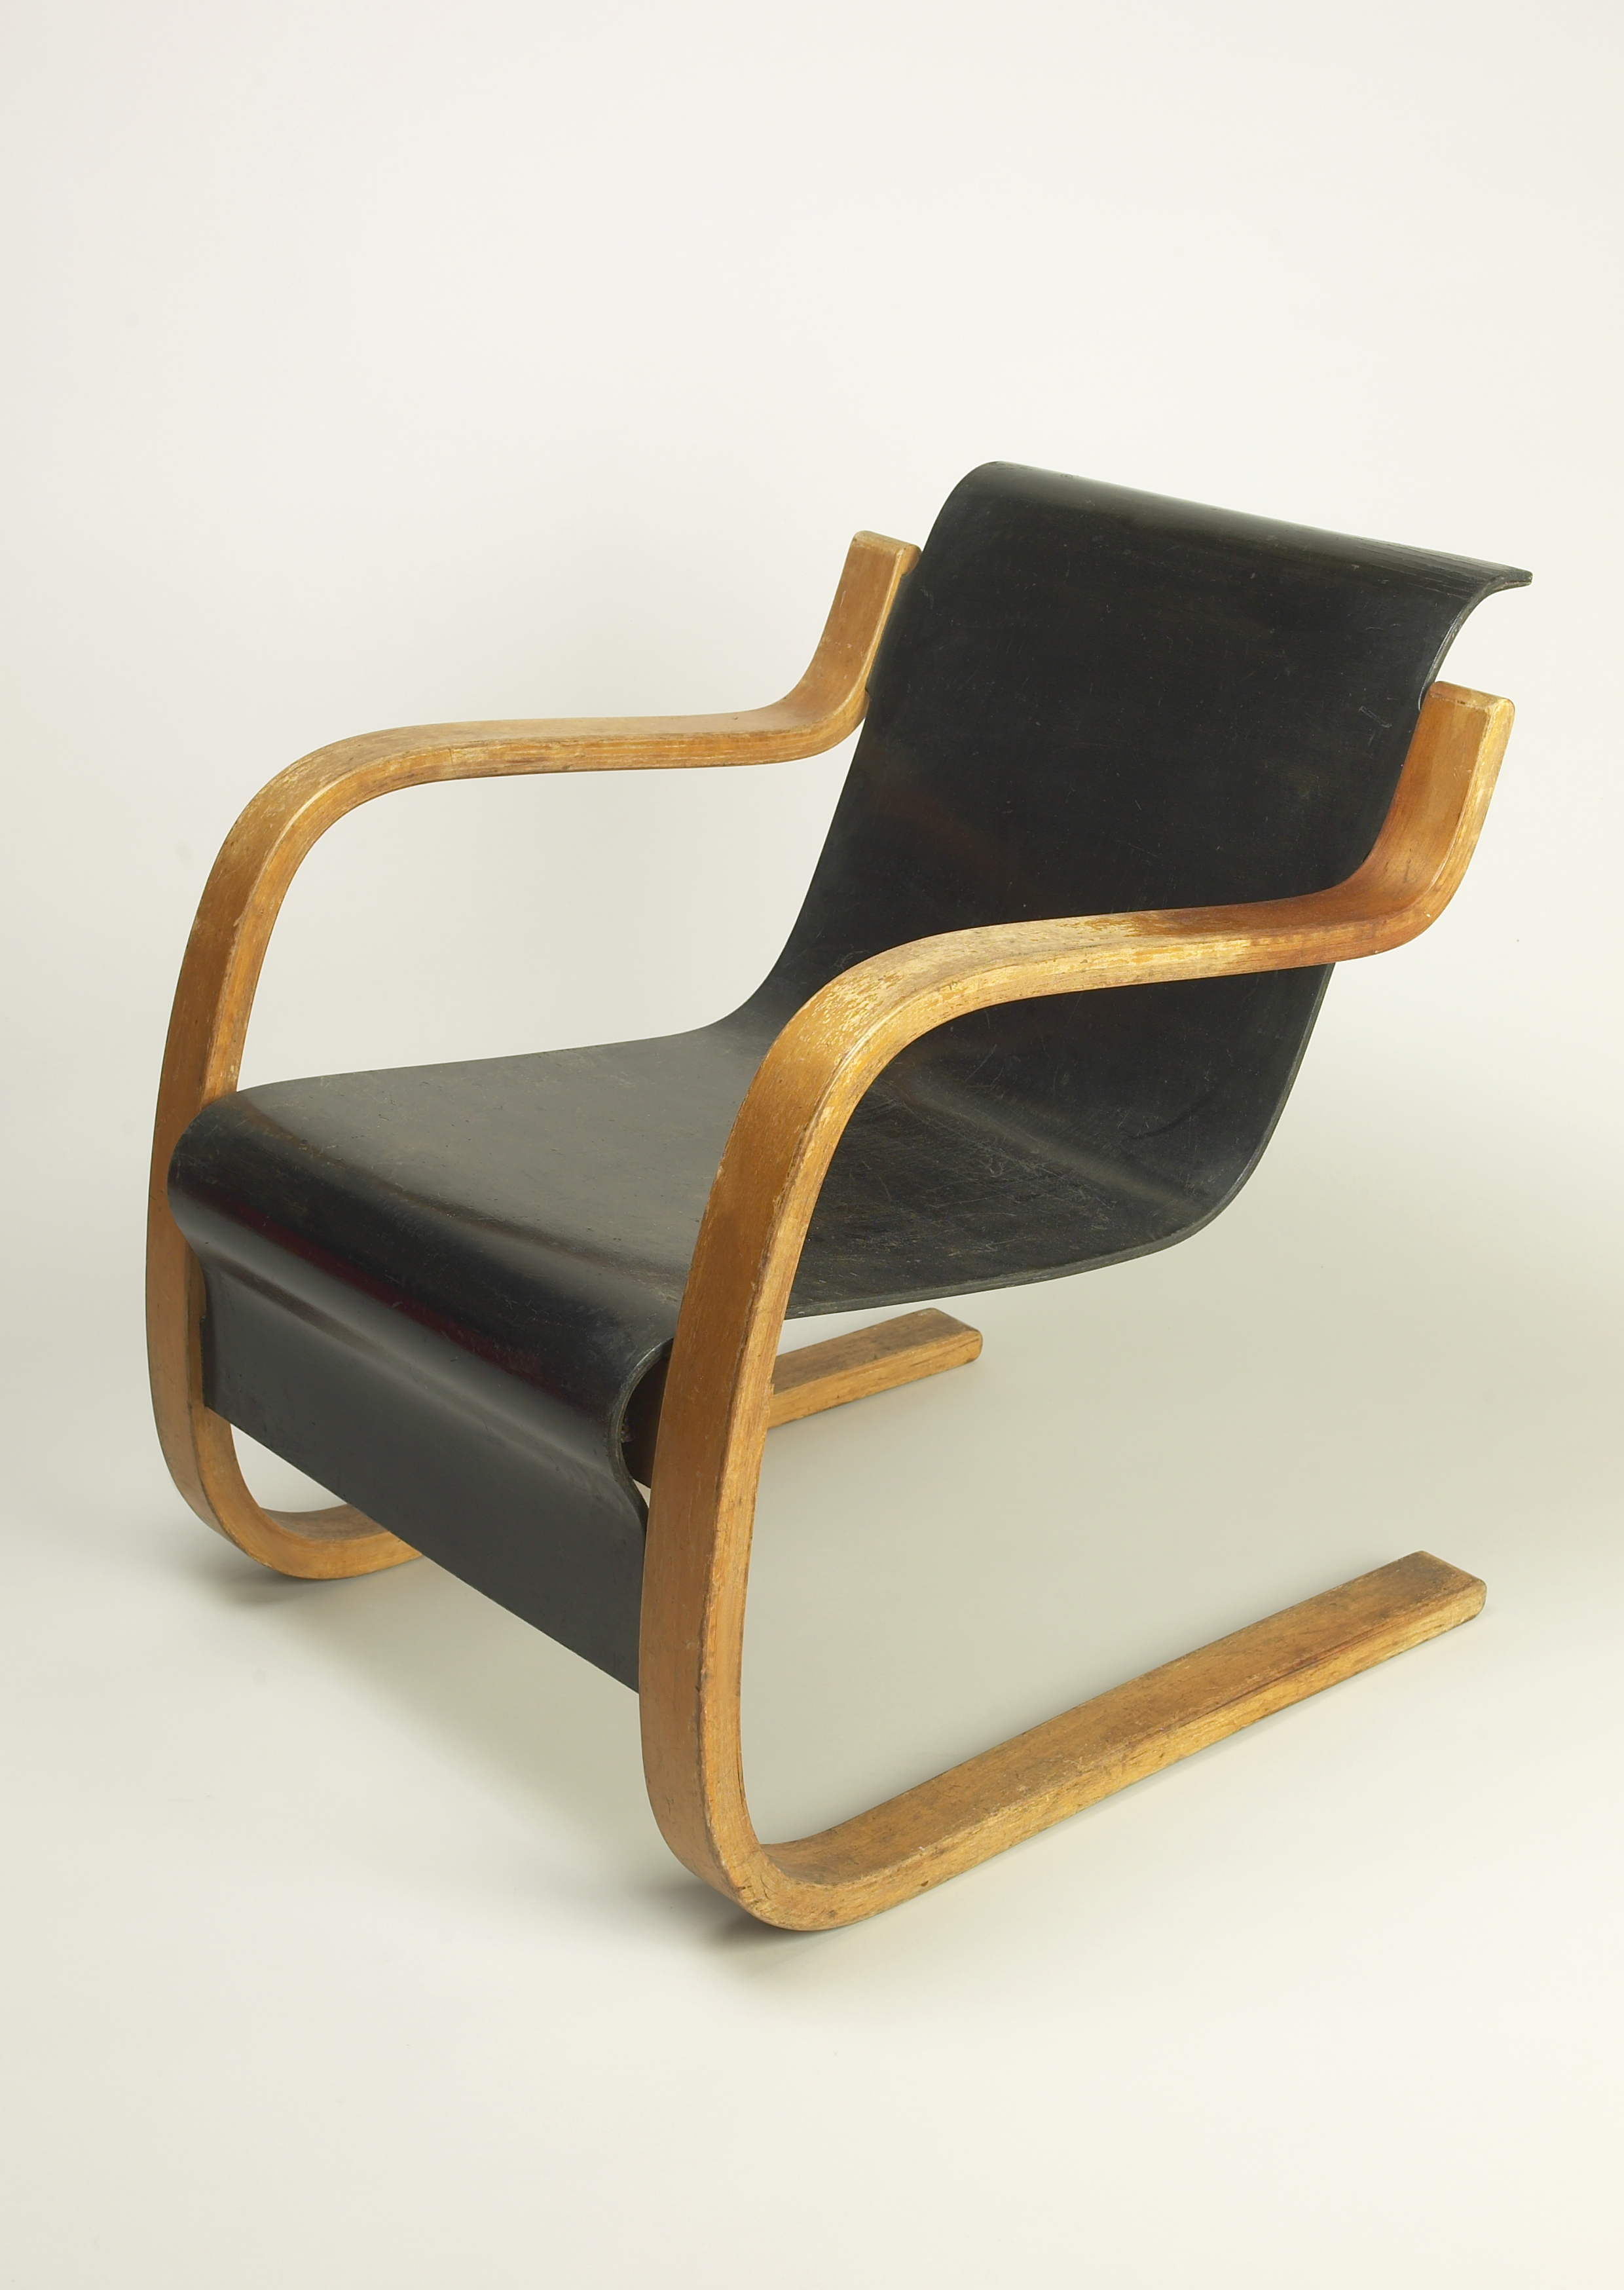 alvar aalto furniture. Peterpetrou.com · Alvar Aalto Chair Furniture